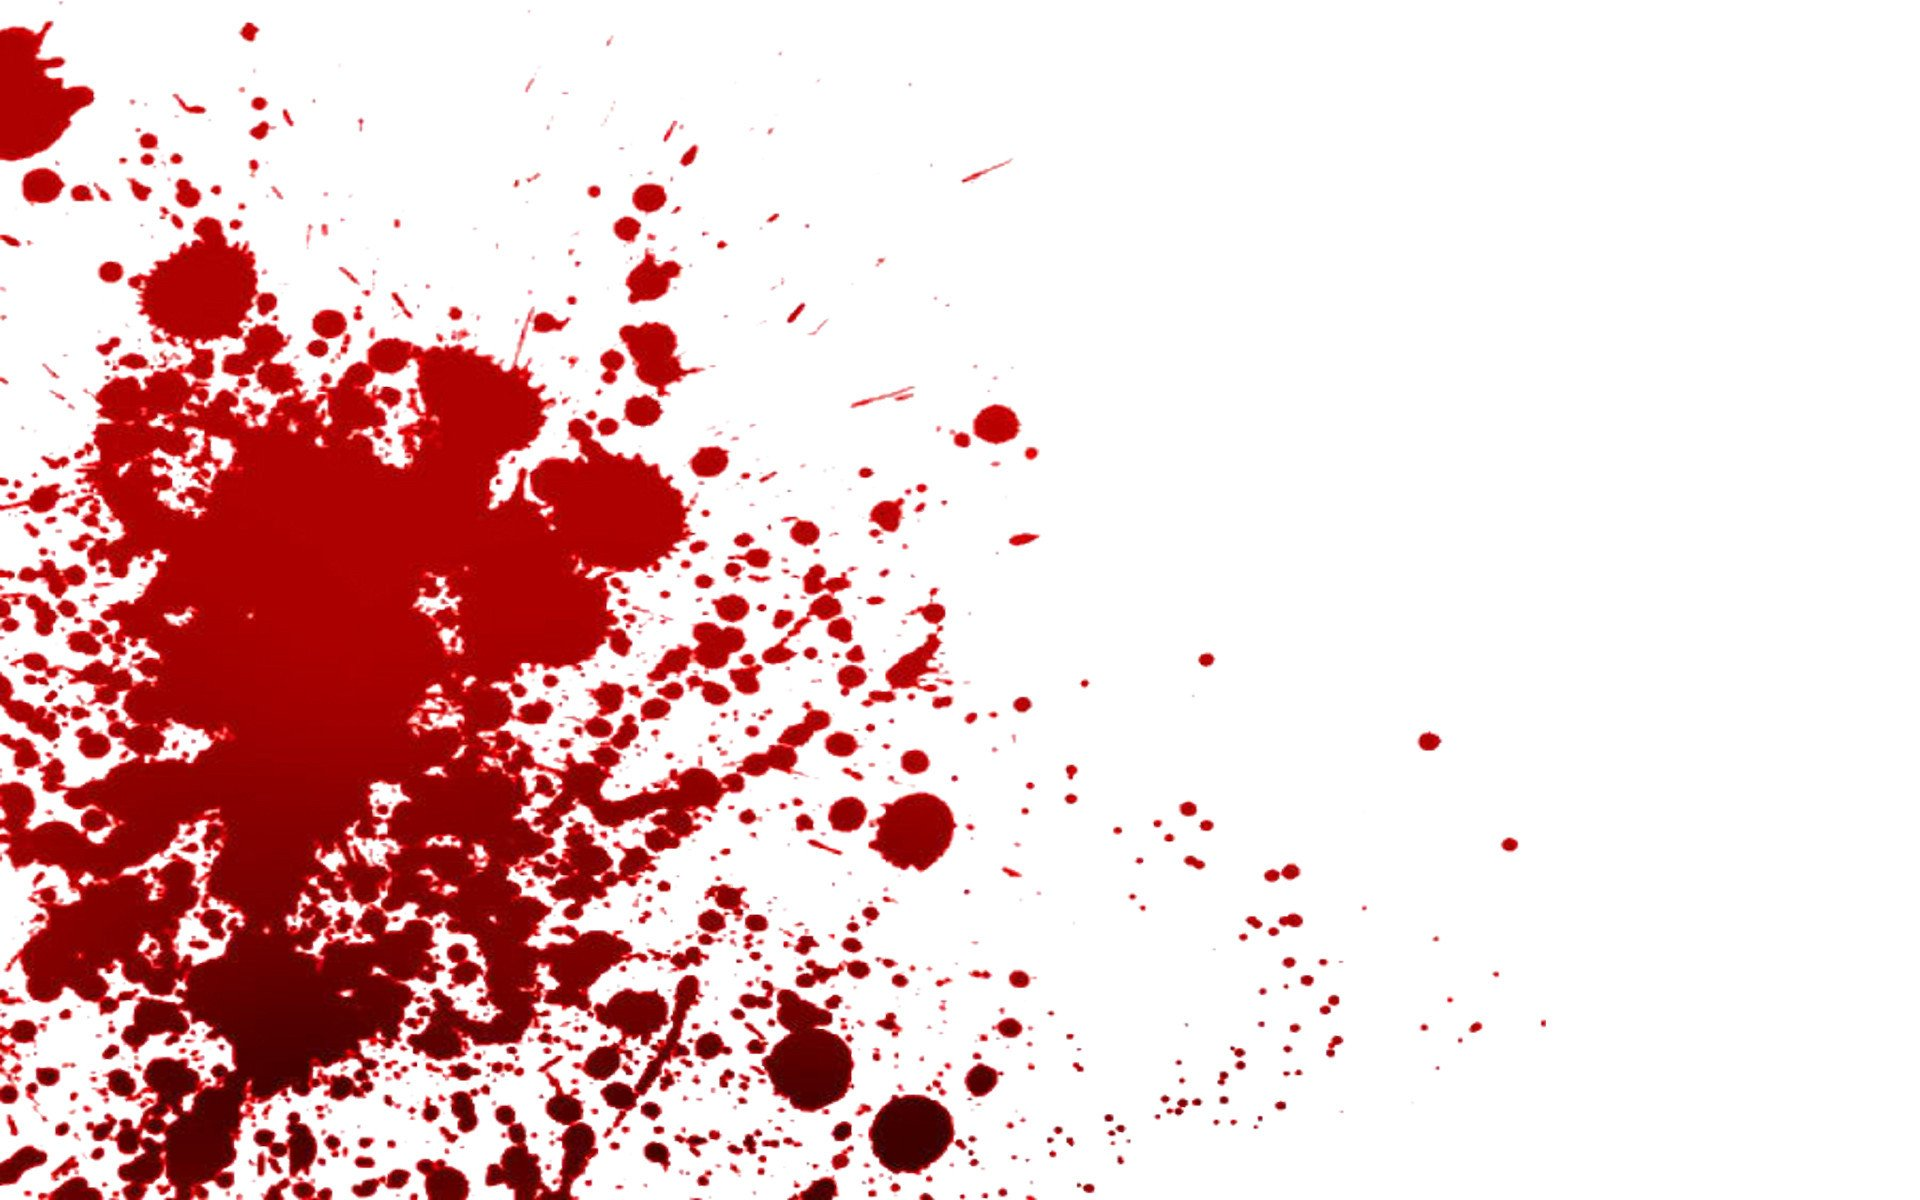 Blood Splatter Powerpoint Templates Blood Splatter Wallpaper [x3] Dexter